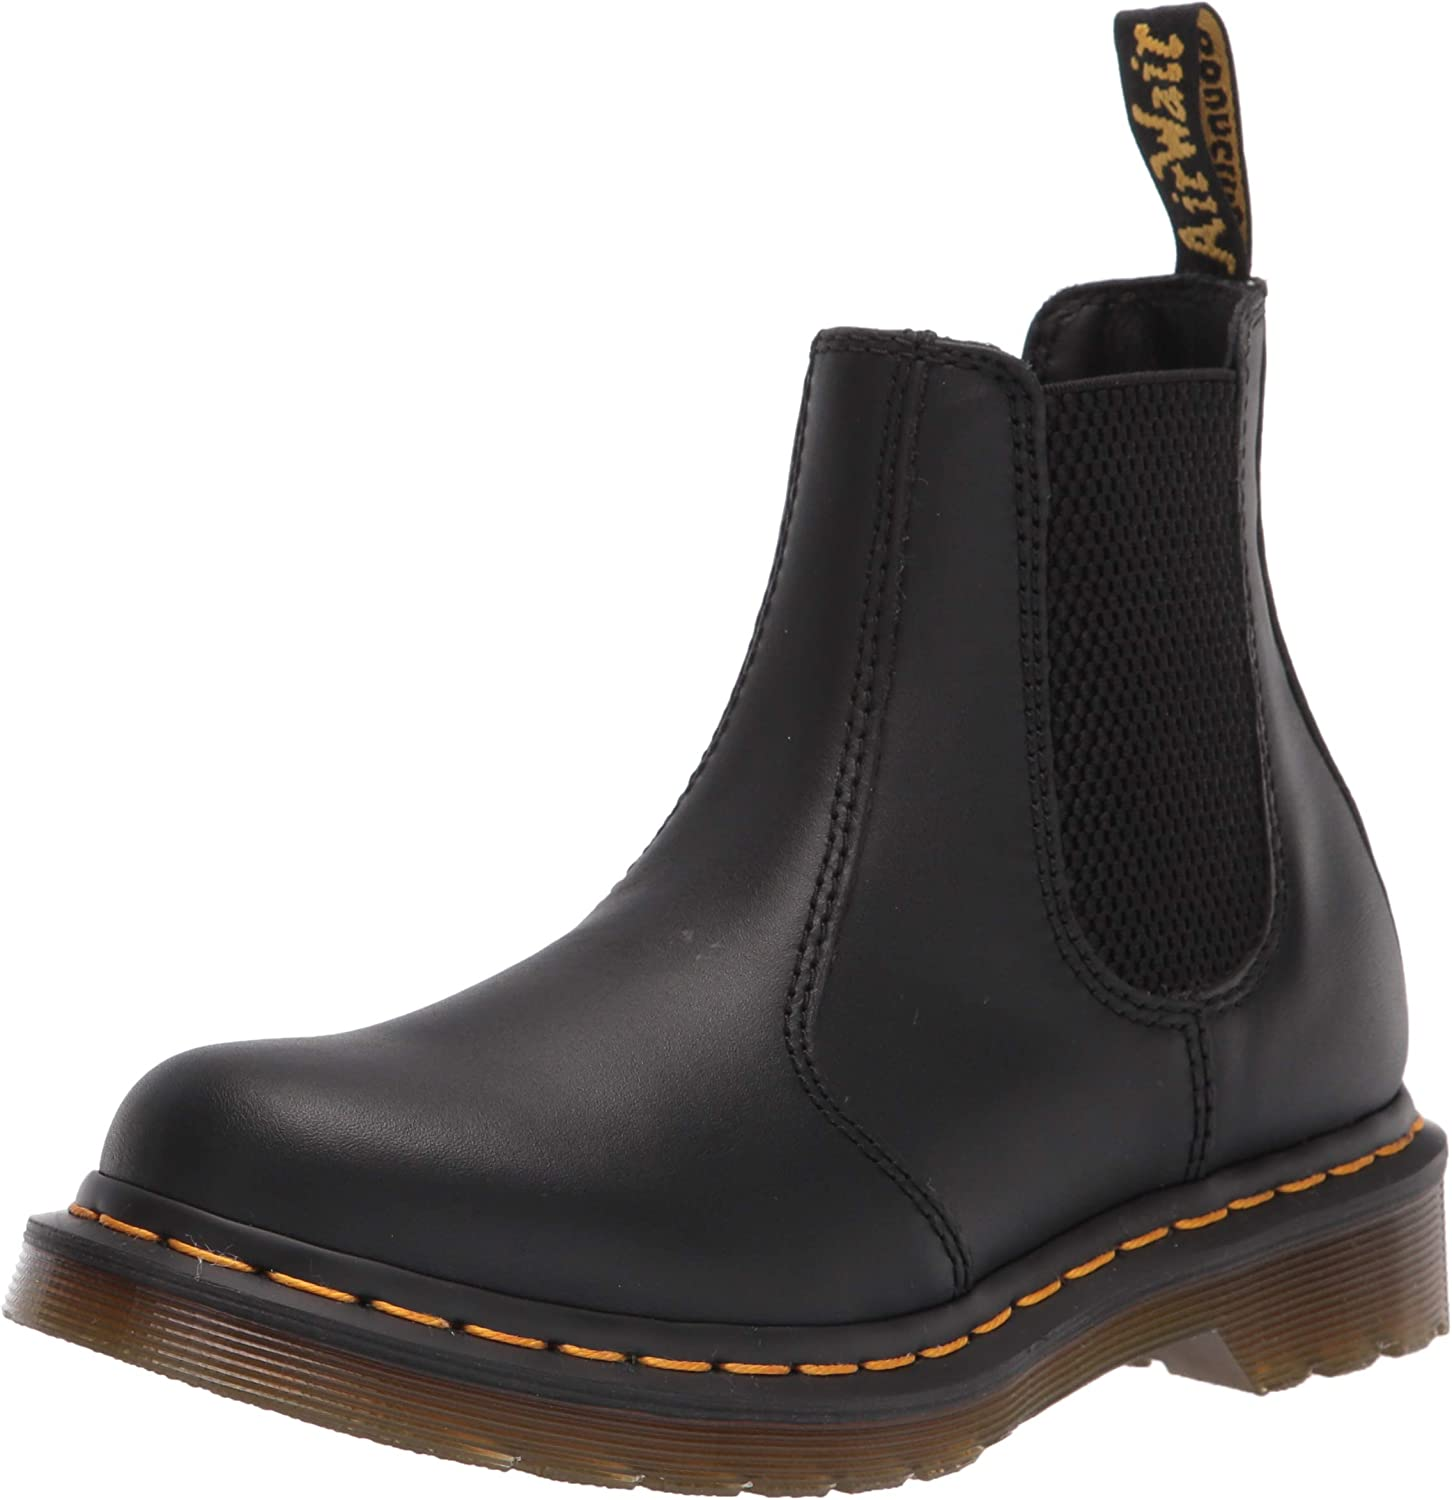 Spring new work one after another Dr. Martens Women's Chelsea gift Boot